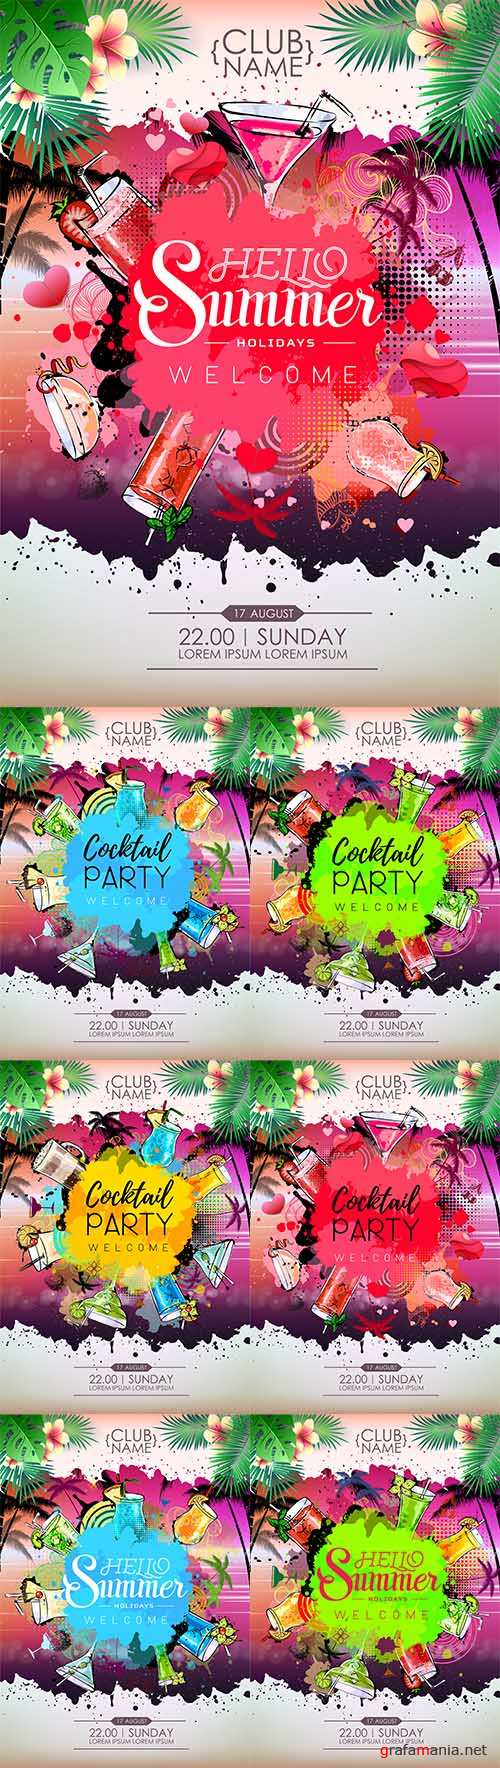 Vector Summer Cocktail party posters design. Cocktail menu